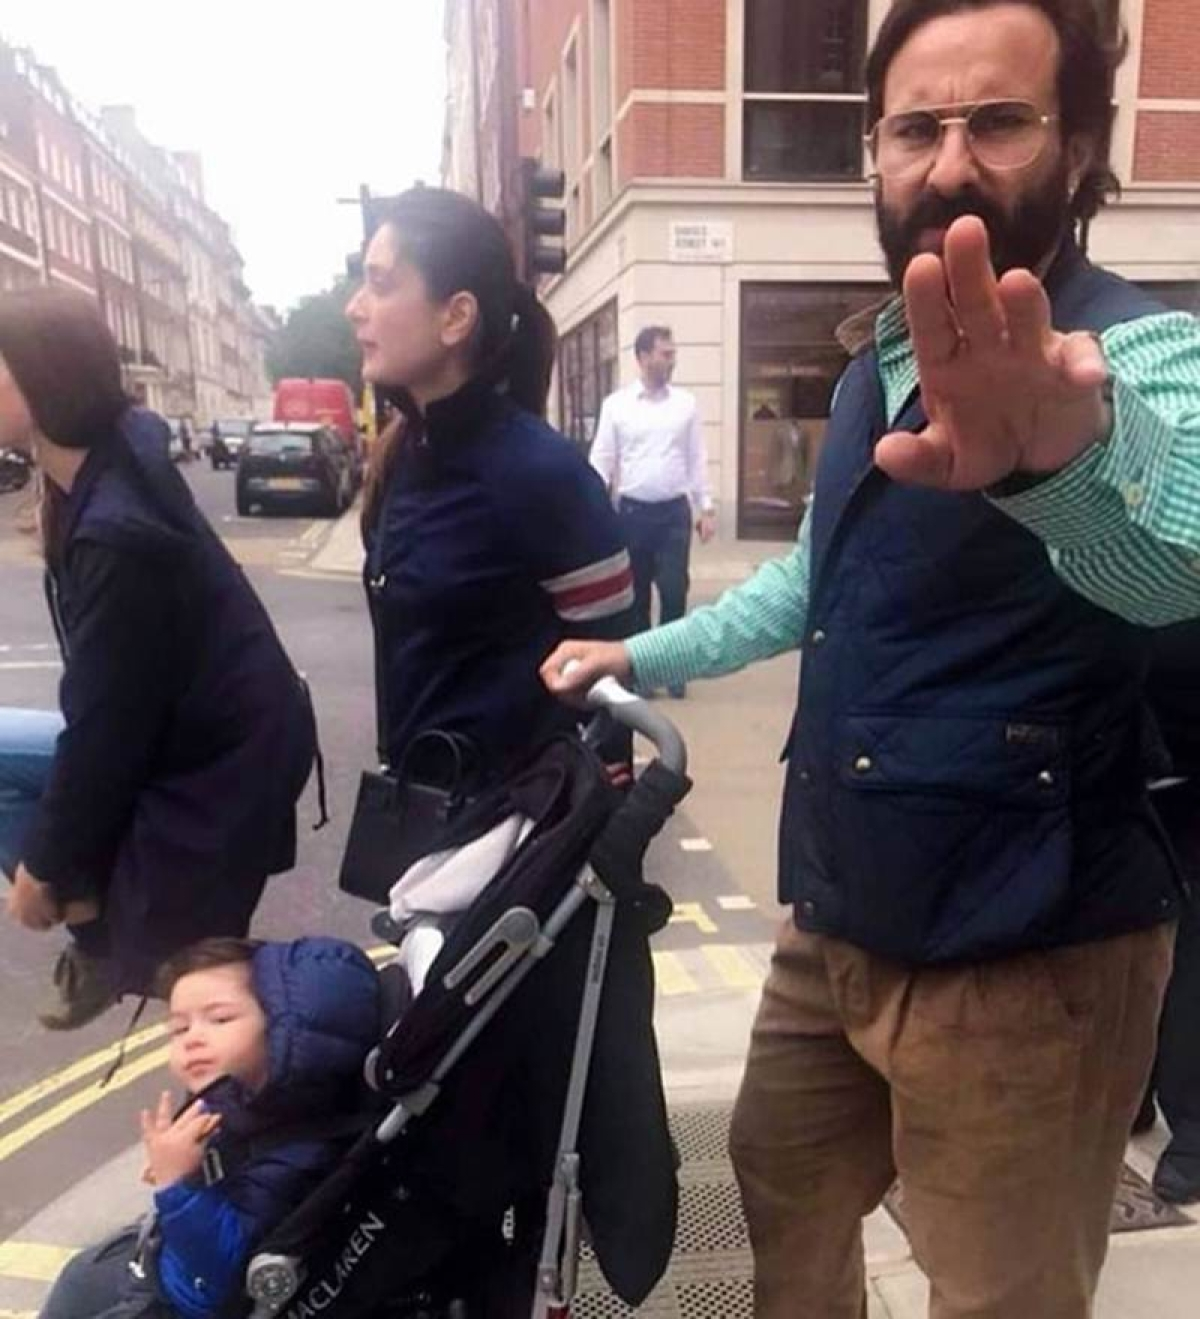 Find out why Taimur's father Saif Ali Khan gets furious at paparazzi